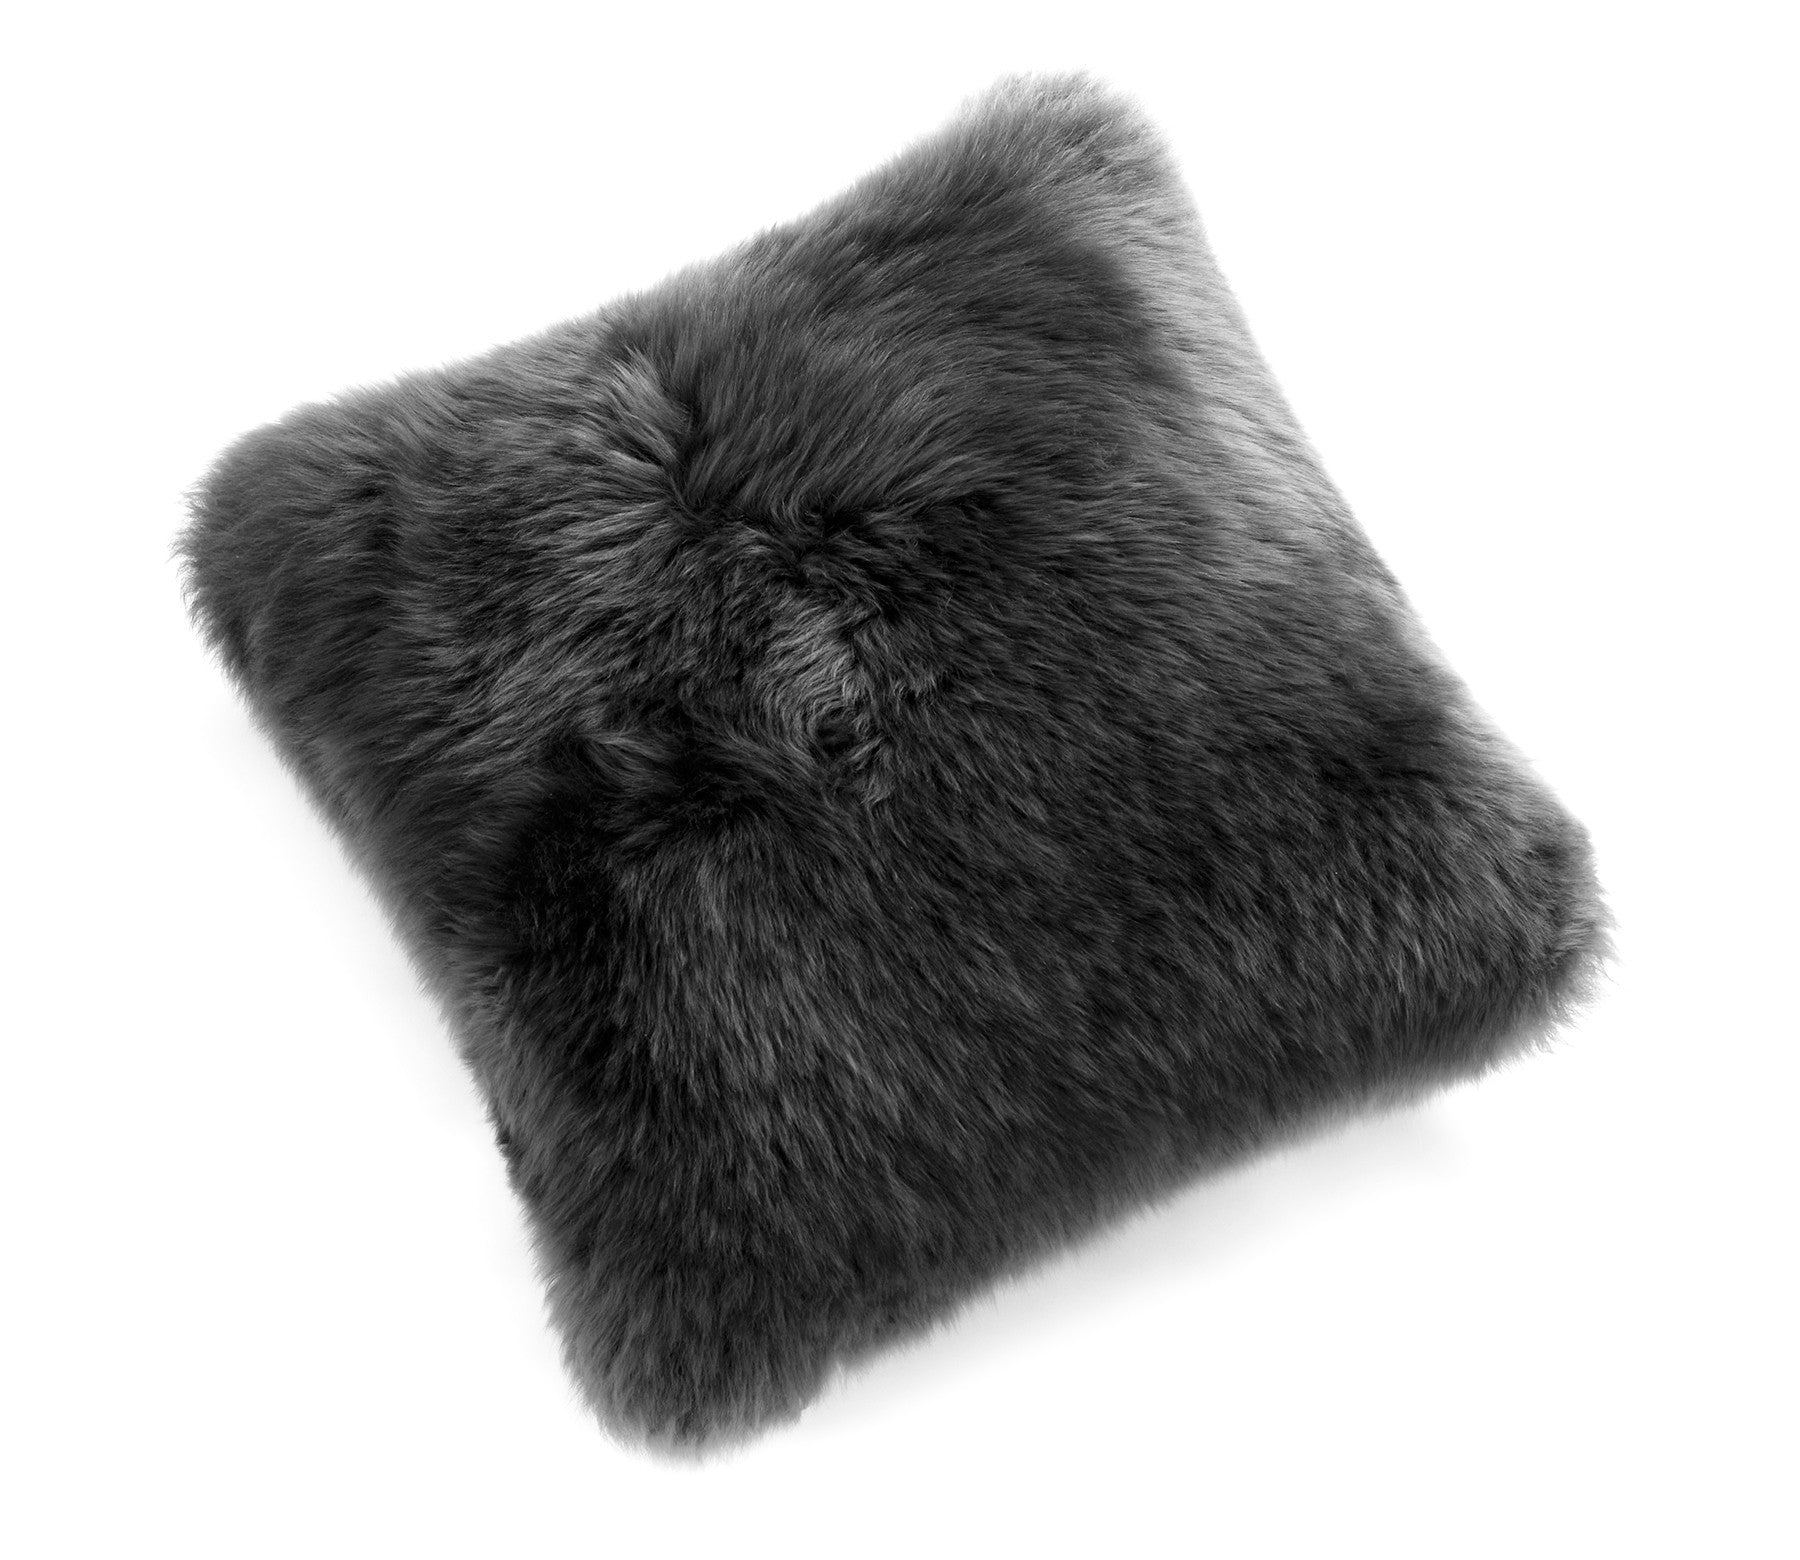 Sheepskin Rug Square: Square Longwool Sheepskin Cushions